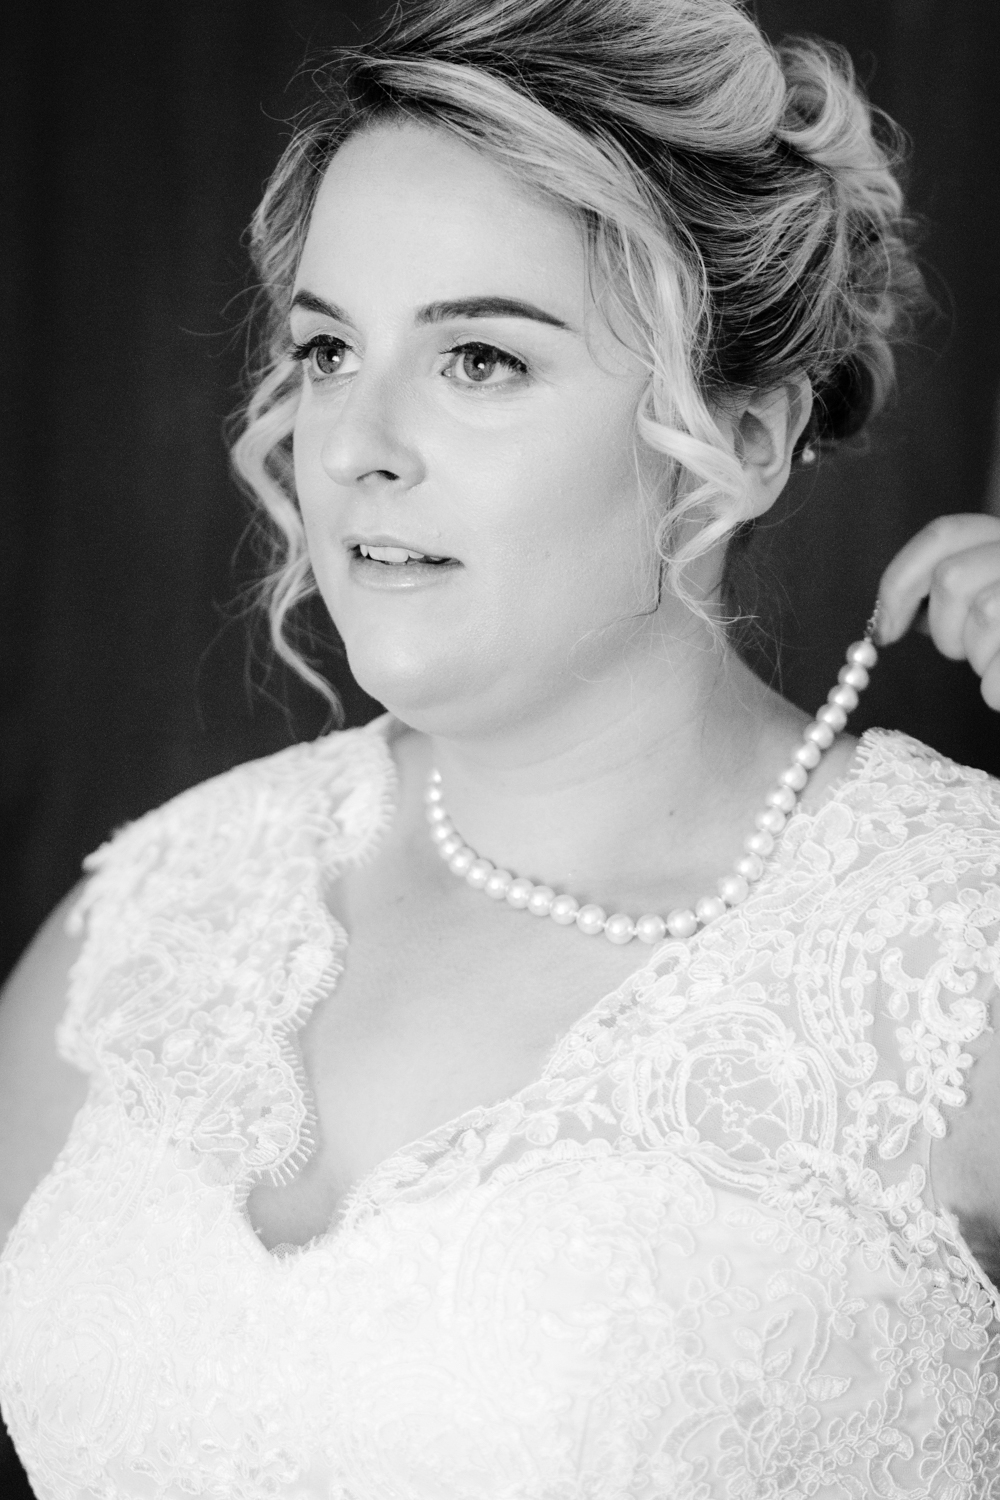 north-wales-wedding-photographer-104.jpg